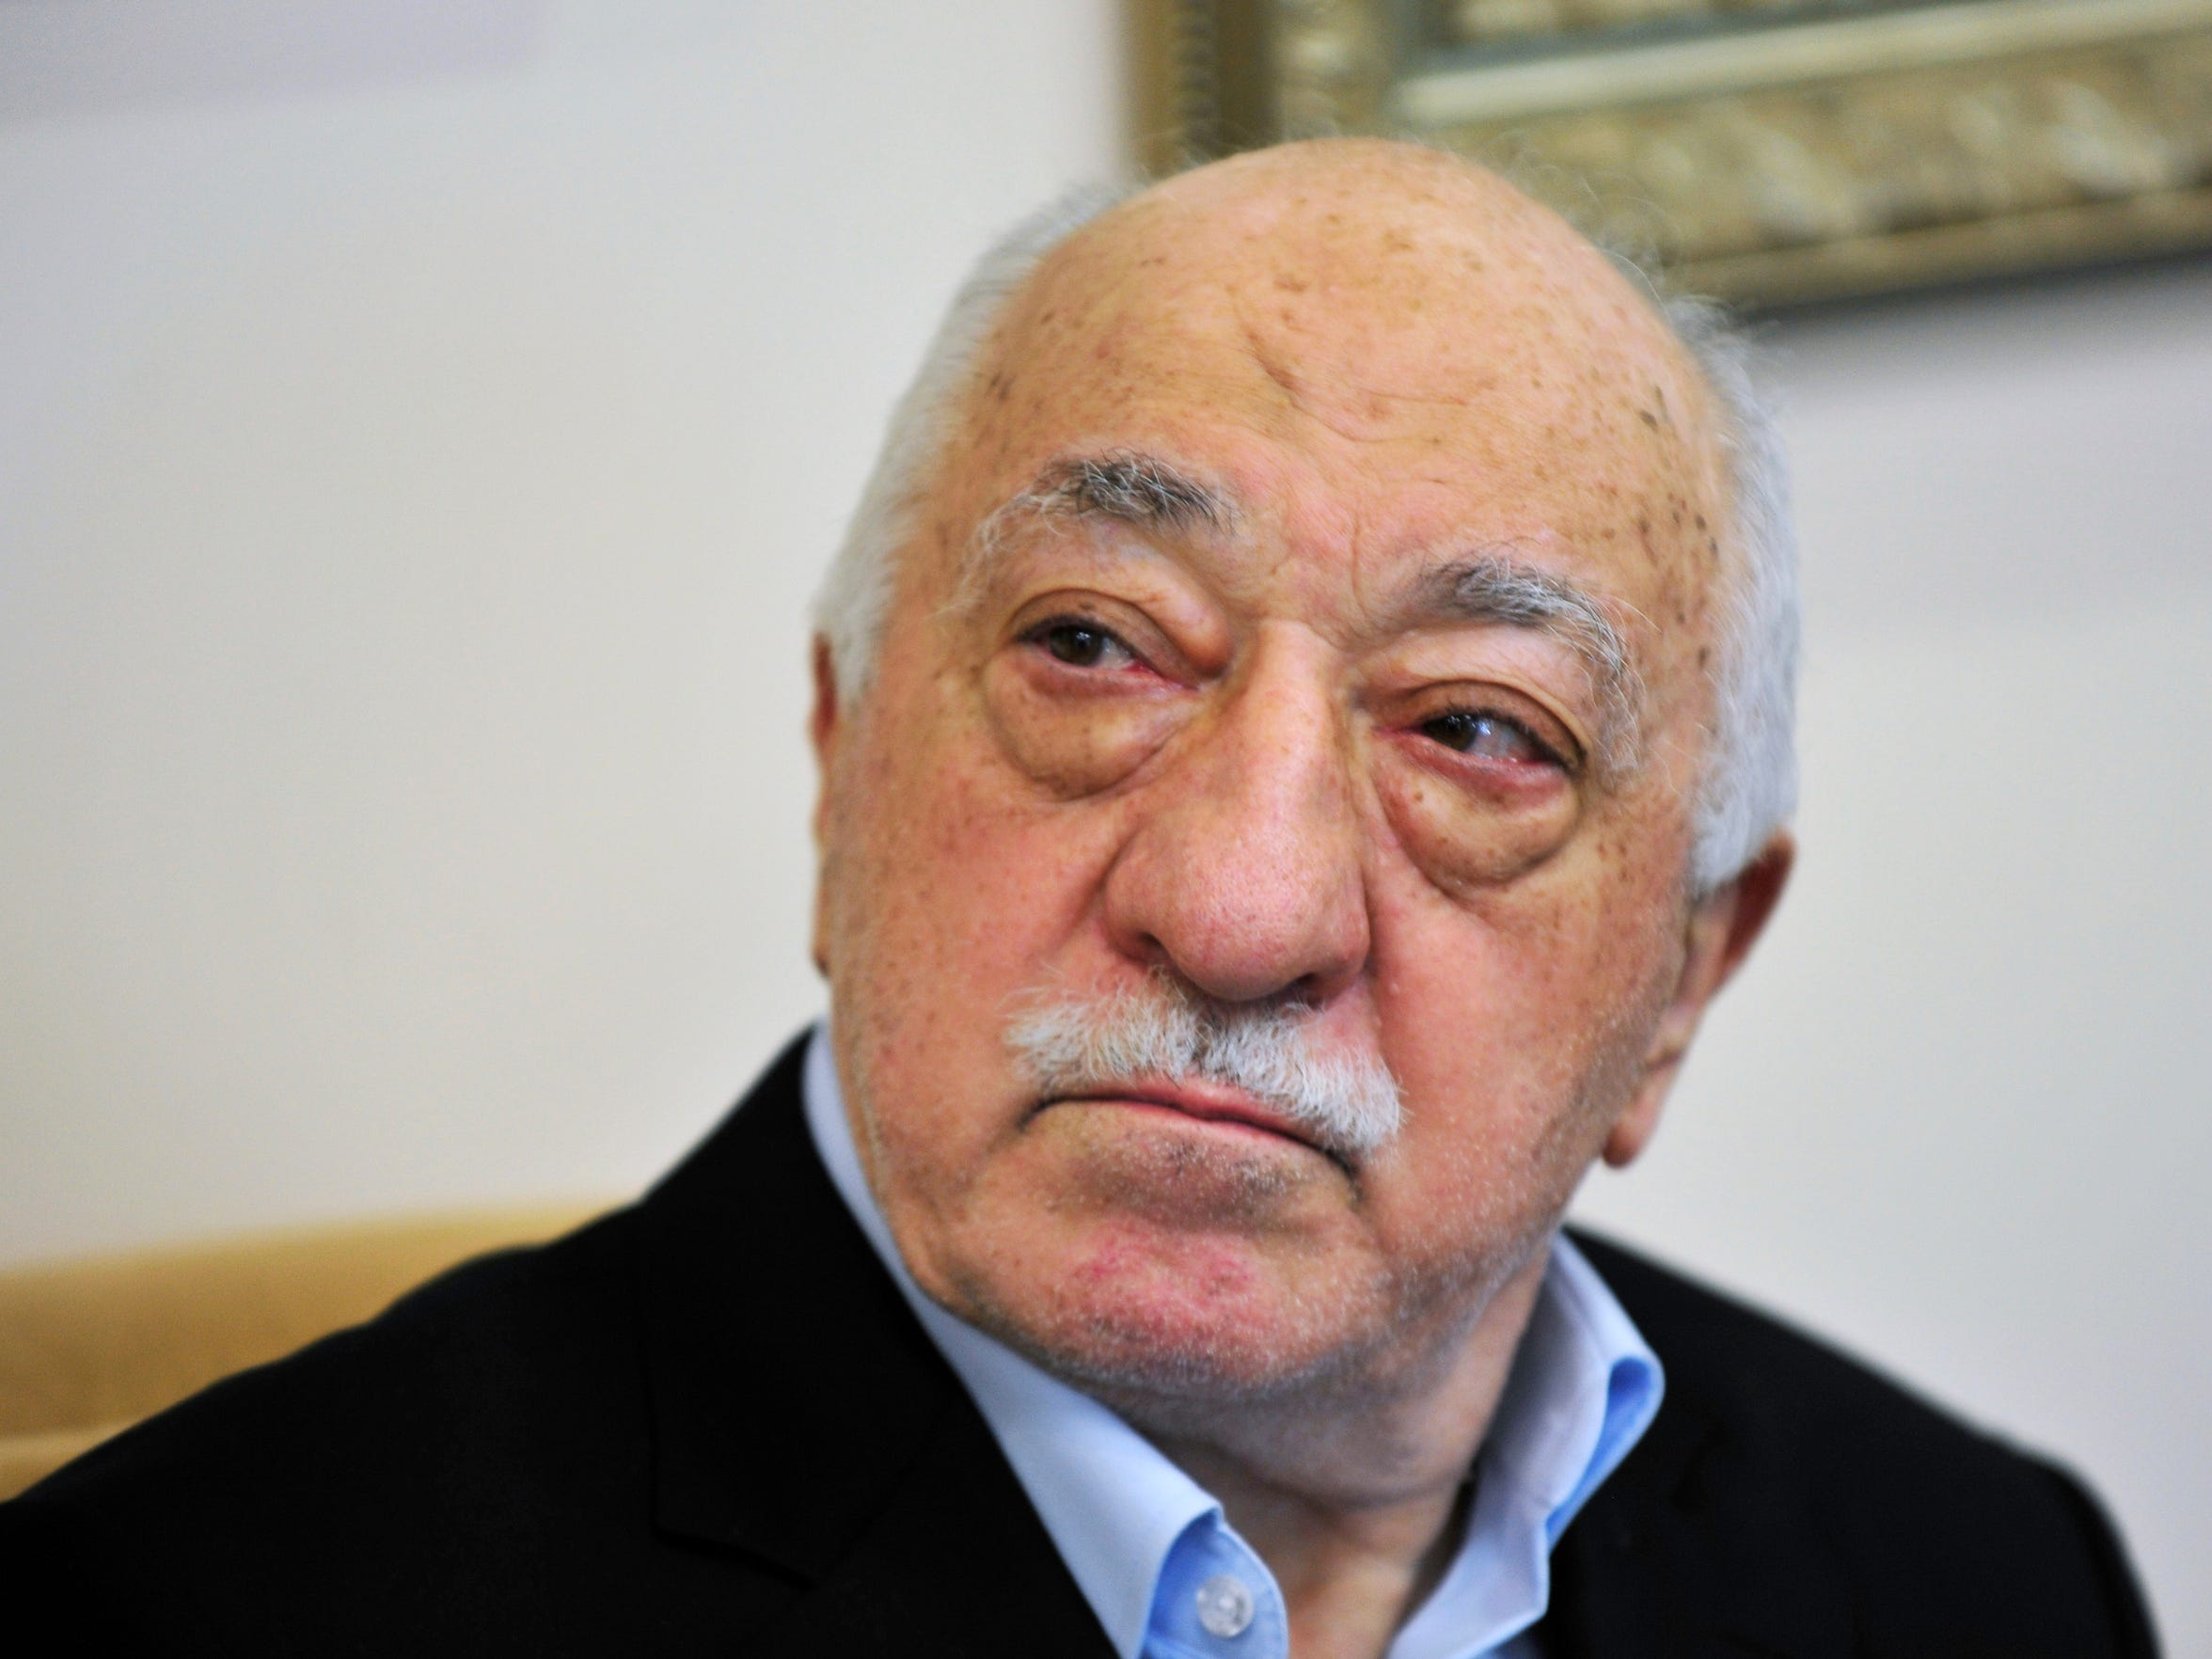 In this July 2016 photo, Islamic cleric Fethullah Gulen speaks to members of the media at his compound in Saylorsburg, Pa.